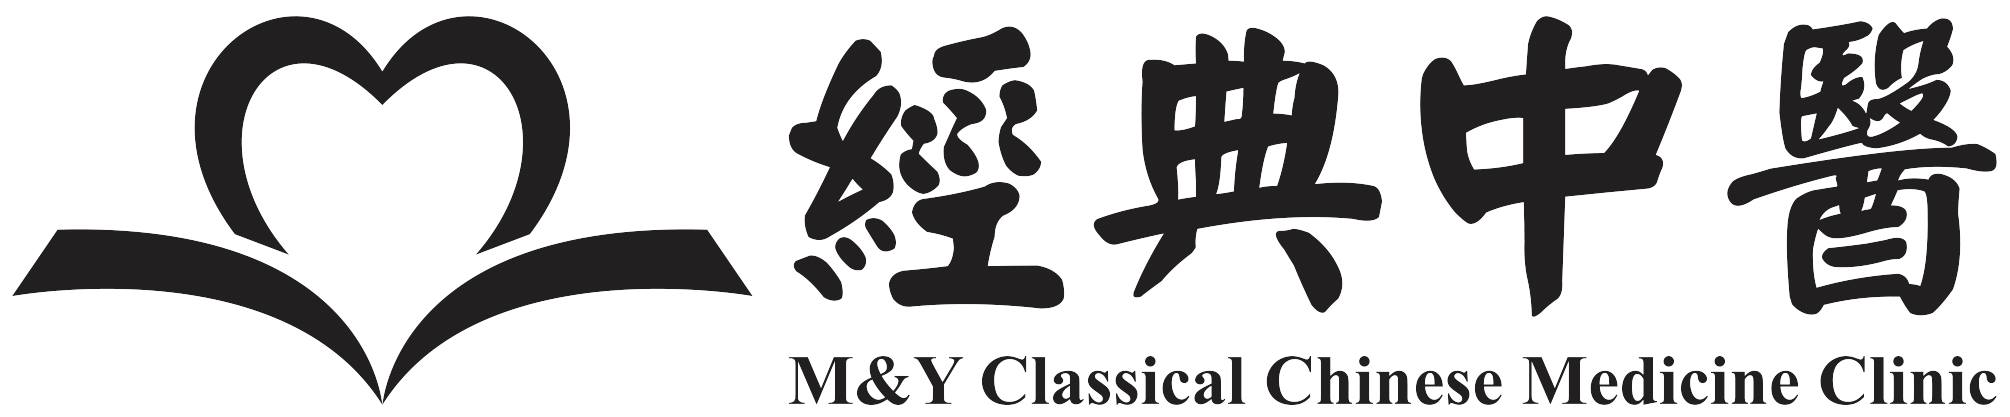 M&Y Classical Chinese Medicine Clinic logo